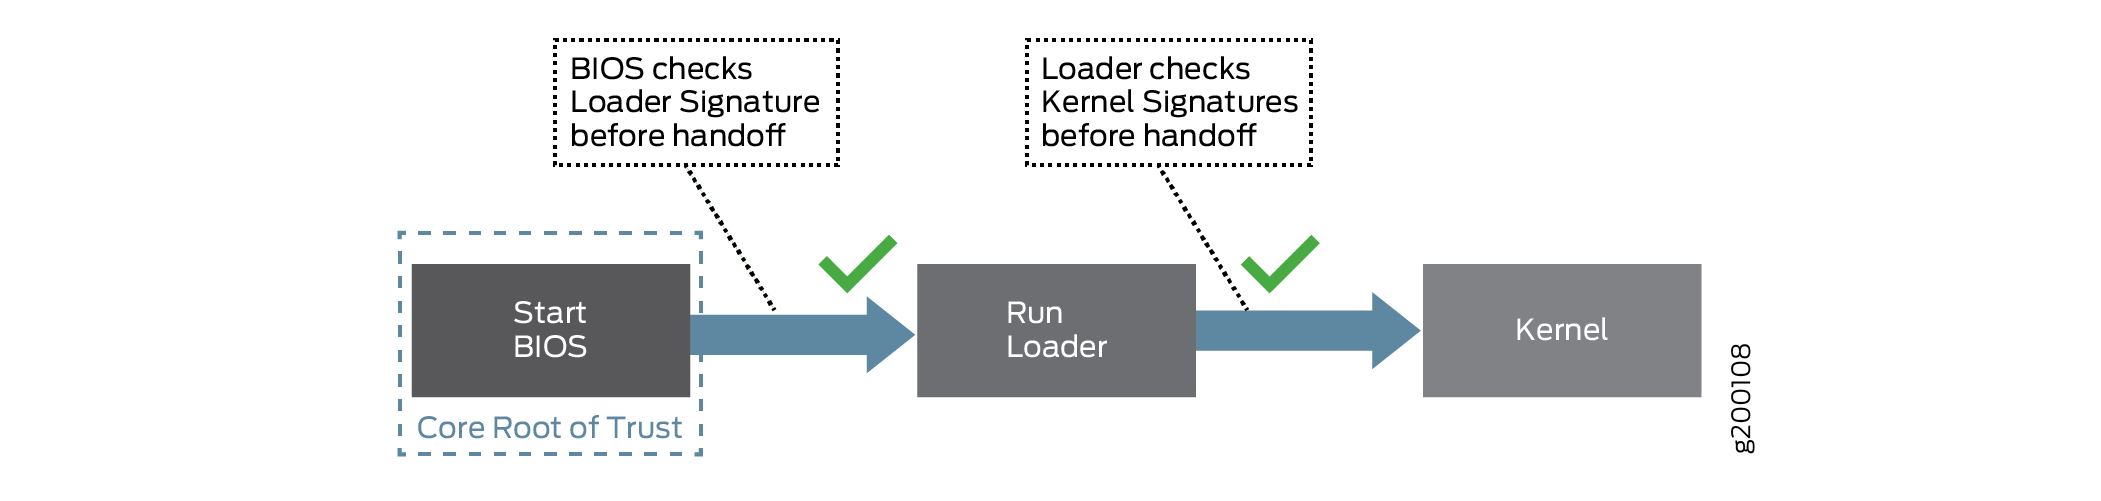 Junos OS Overview - TechLibrary - Juniper Networks